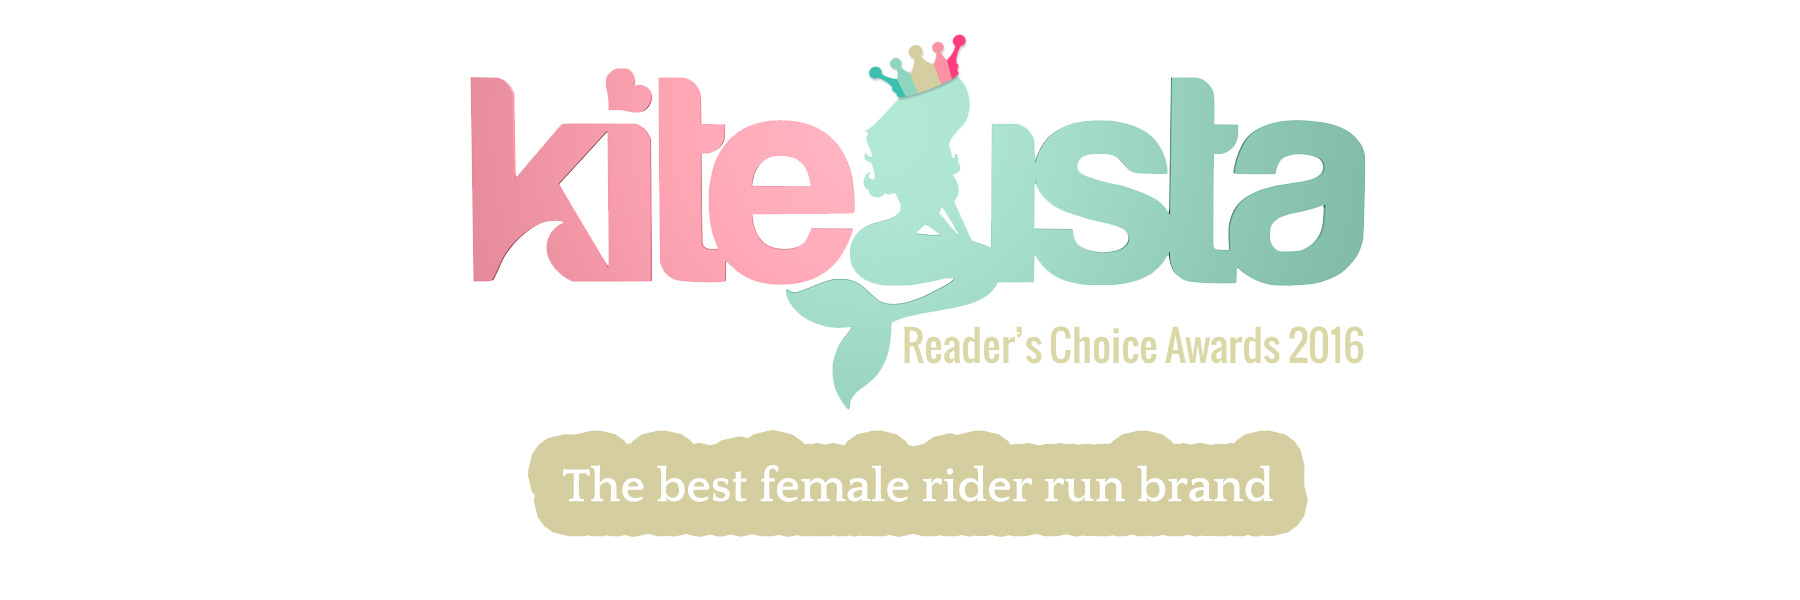 The Best Female Rider Run Brand – 2016 Reader's Choice Awards